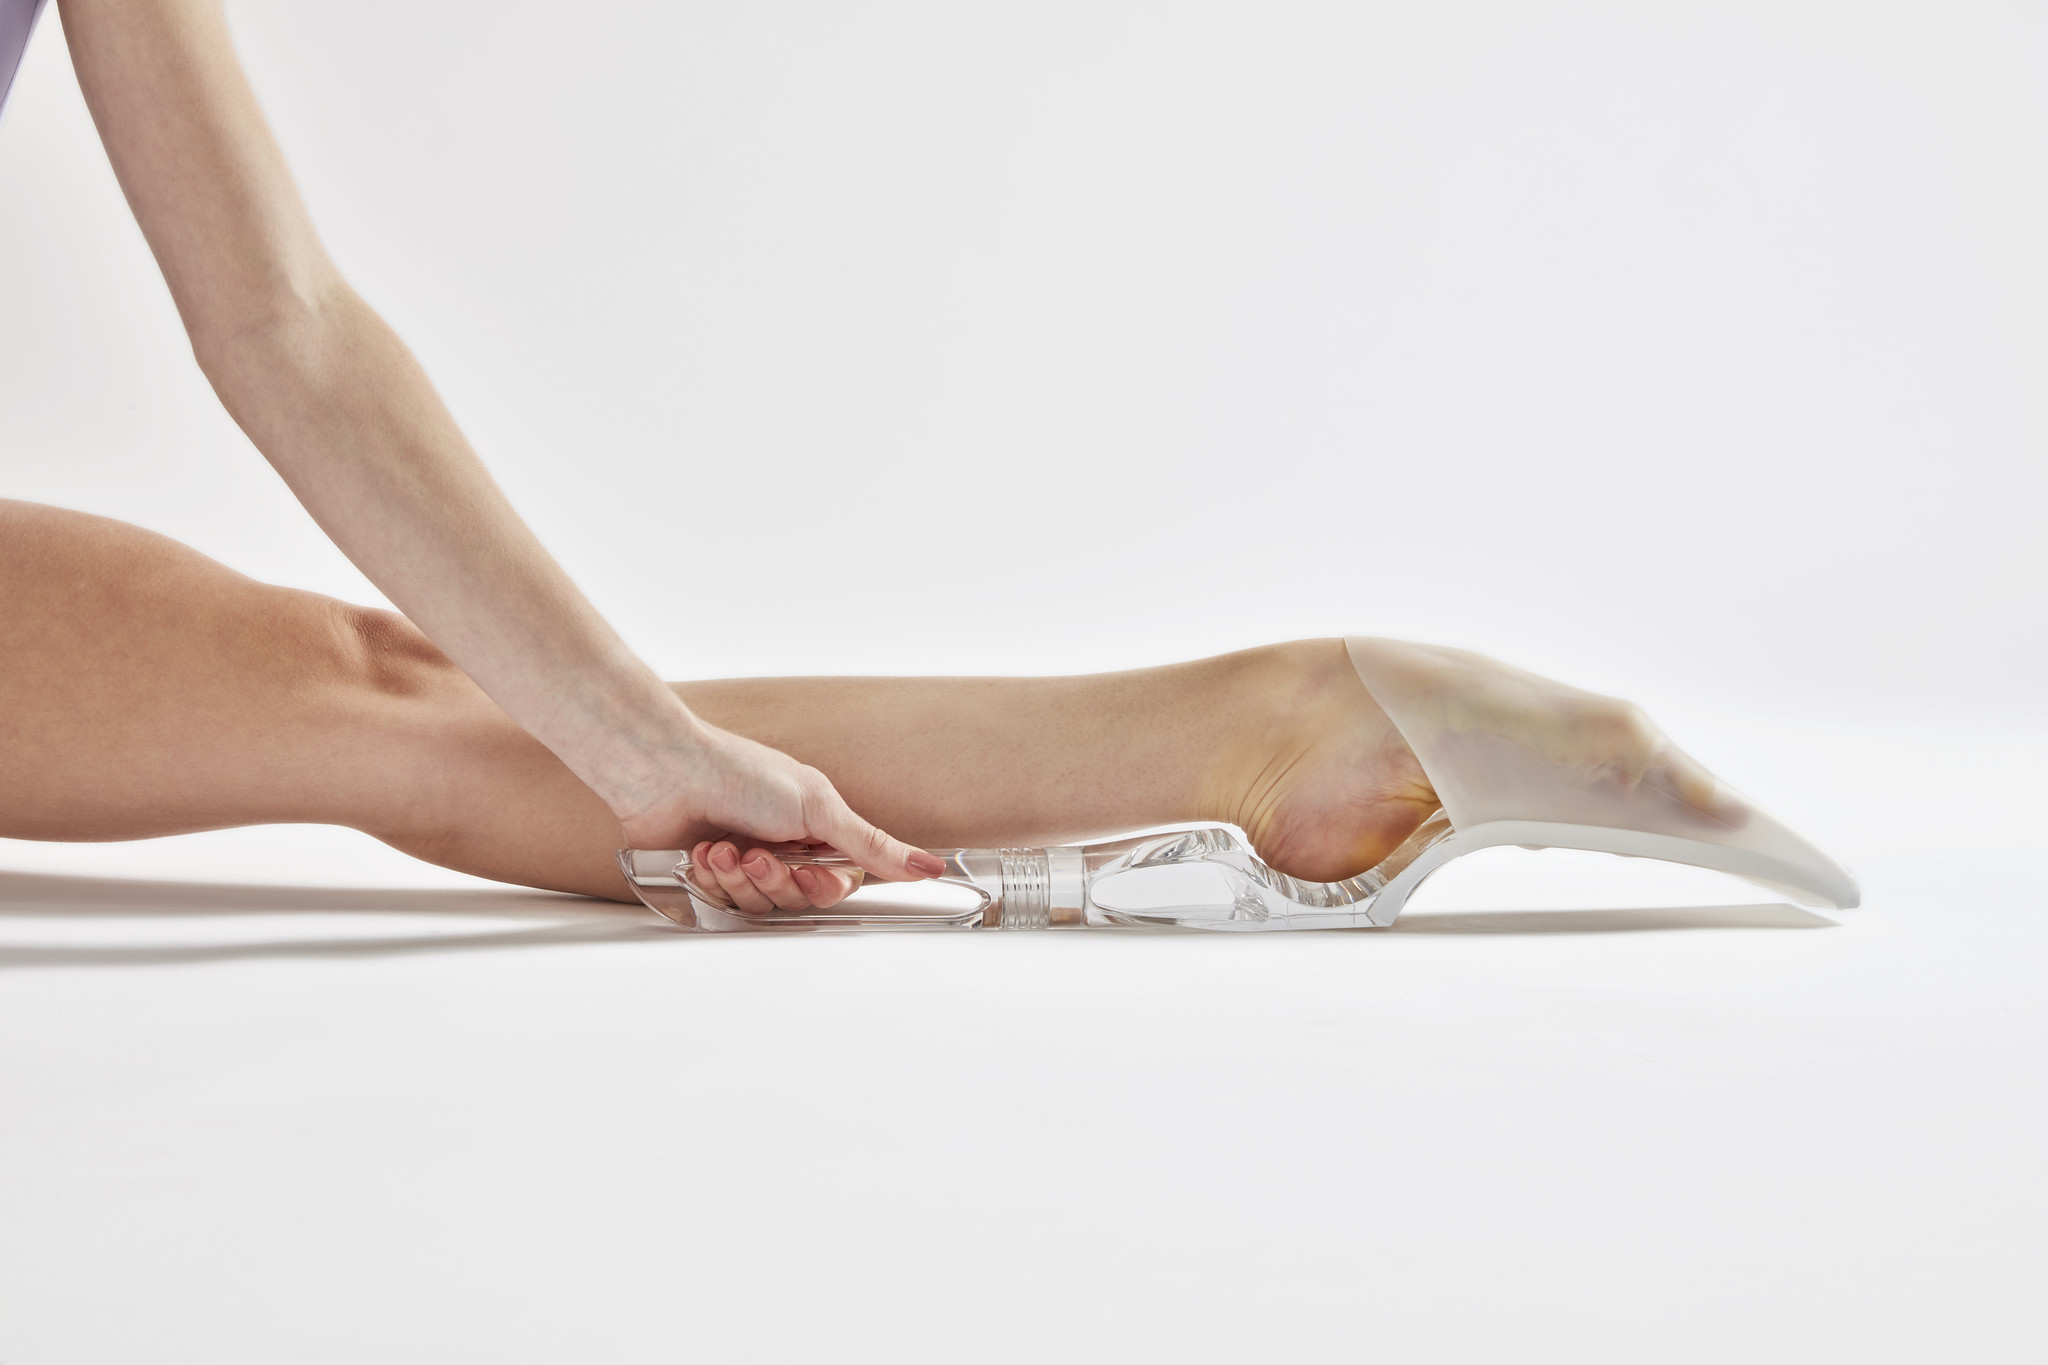 Improvedance THE-Footstretcher-LIT